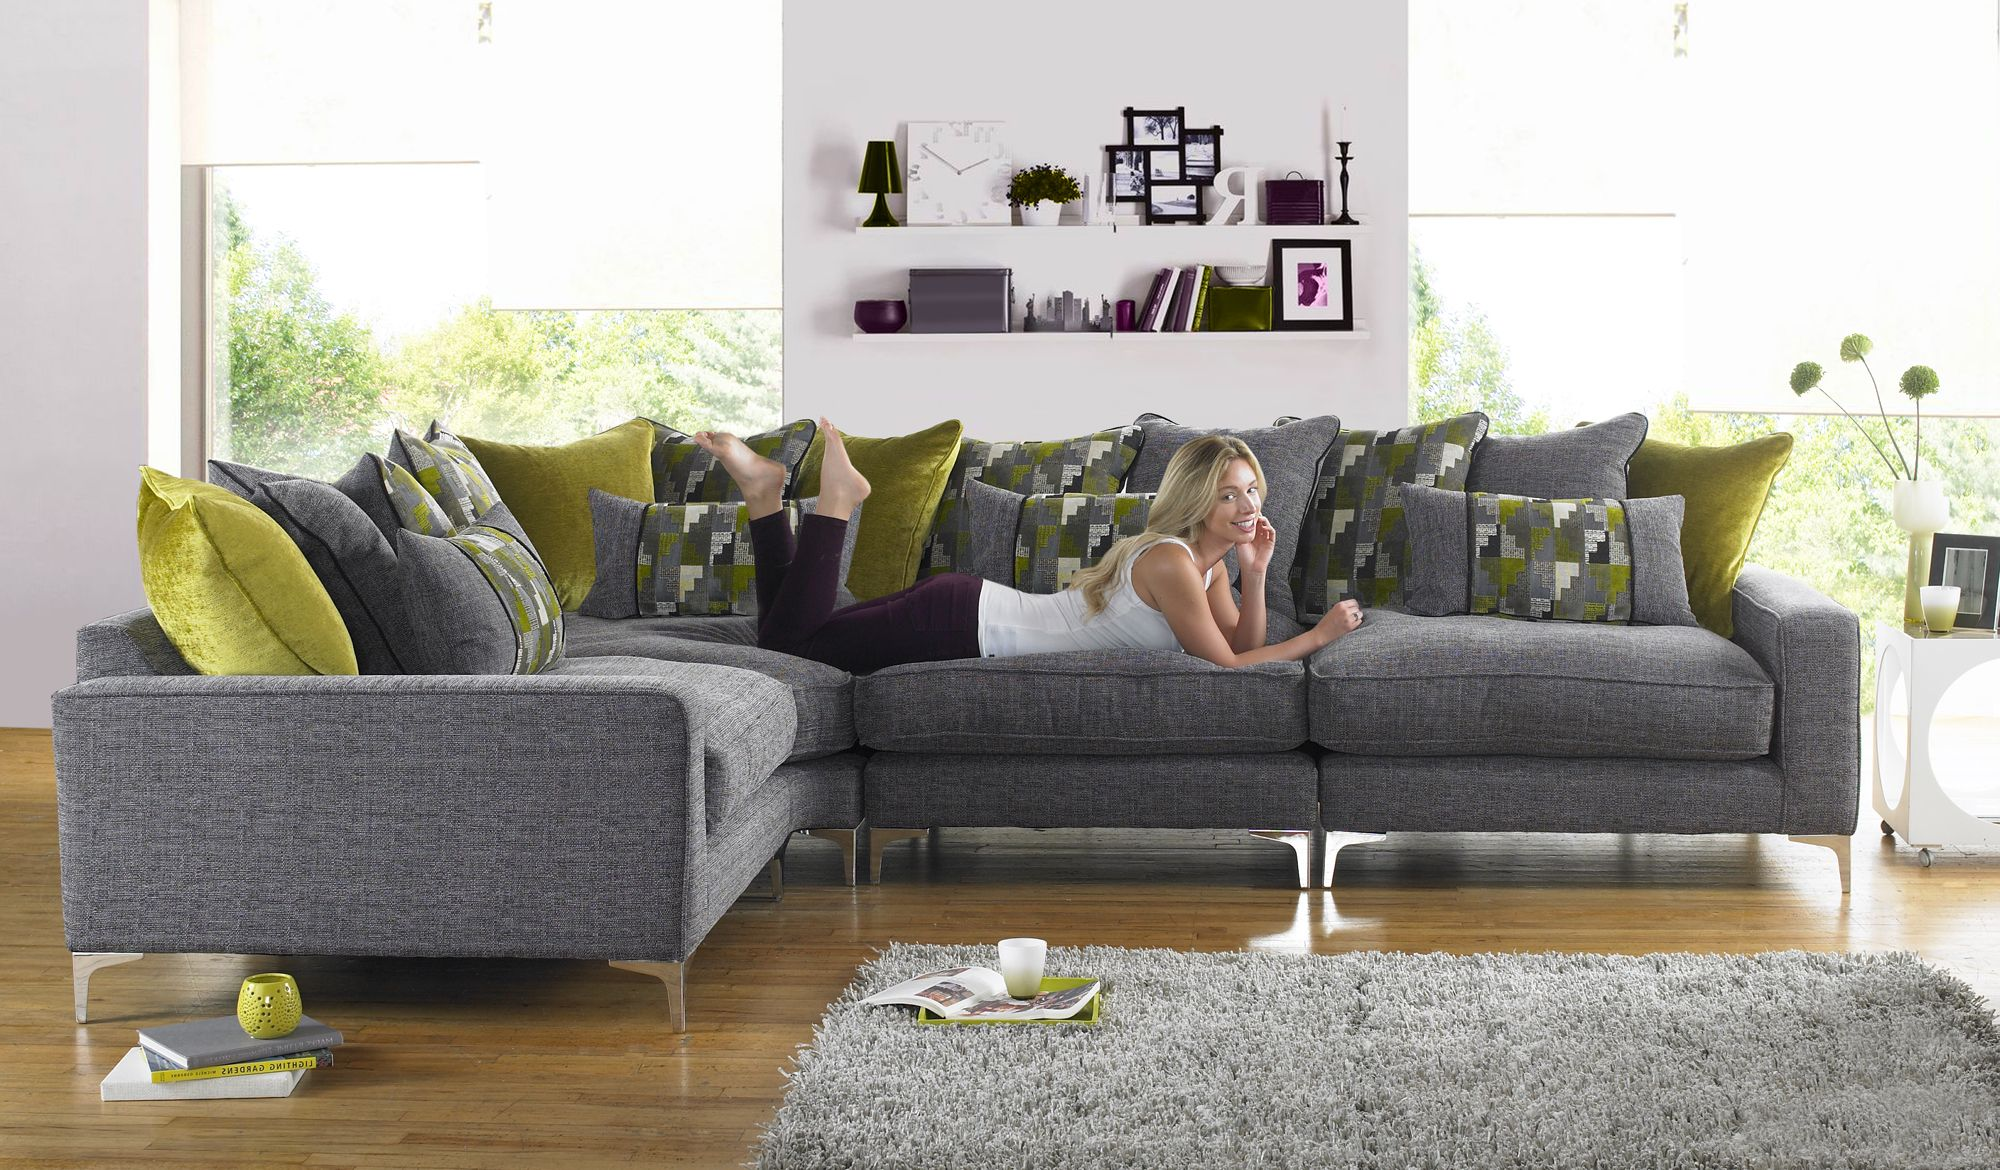 Check out the Pentagon sofa from Sofaworks